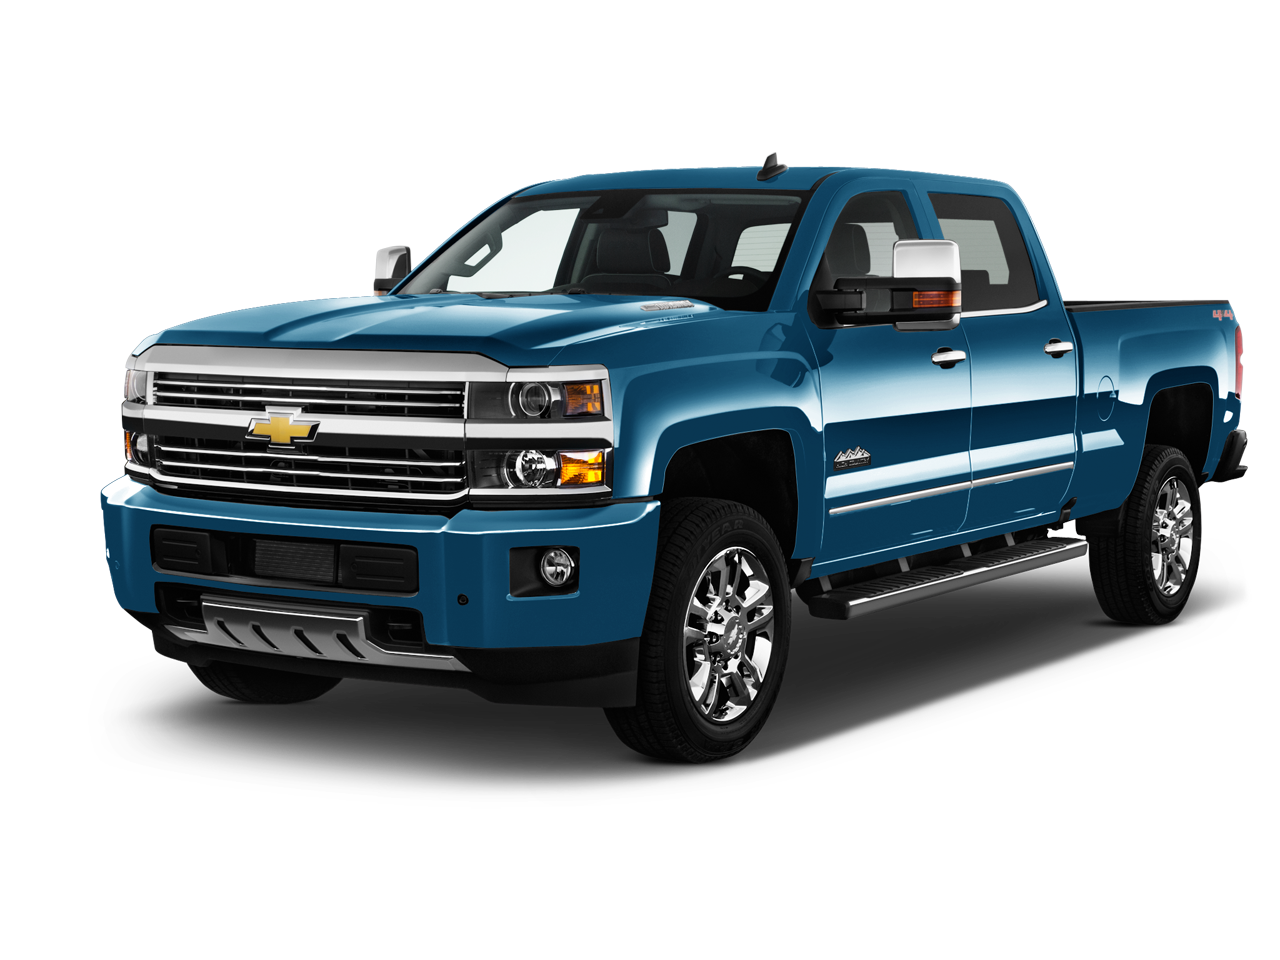 new 2018 chevrolet silverado 2500hd wt youngstown oh near columbiana oh sweeney chevrolet. Black Bedroom Furniture Sets. Home Design Ideas